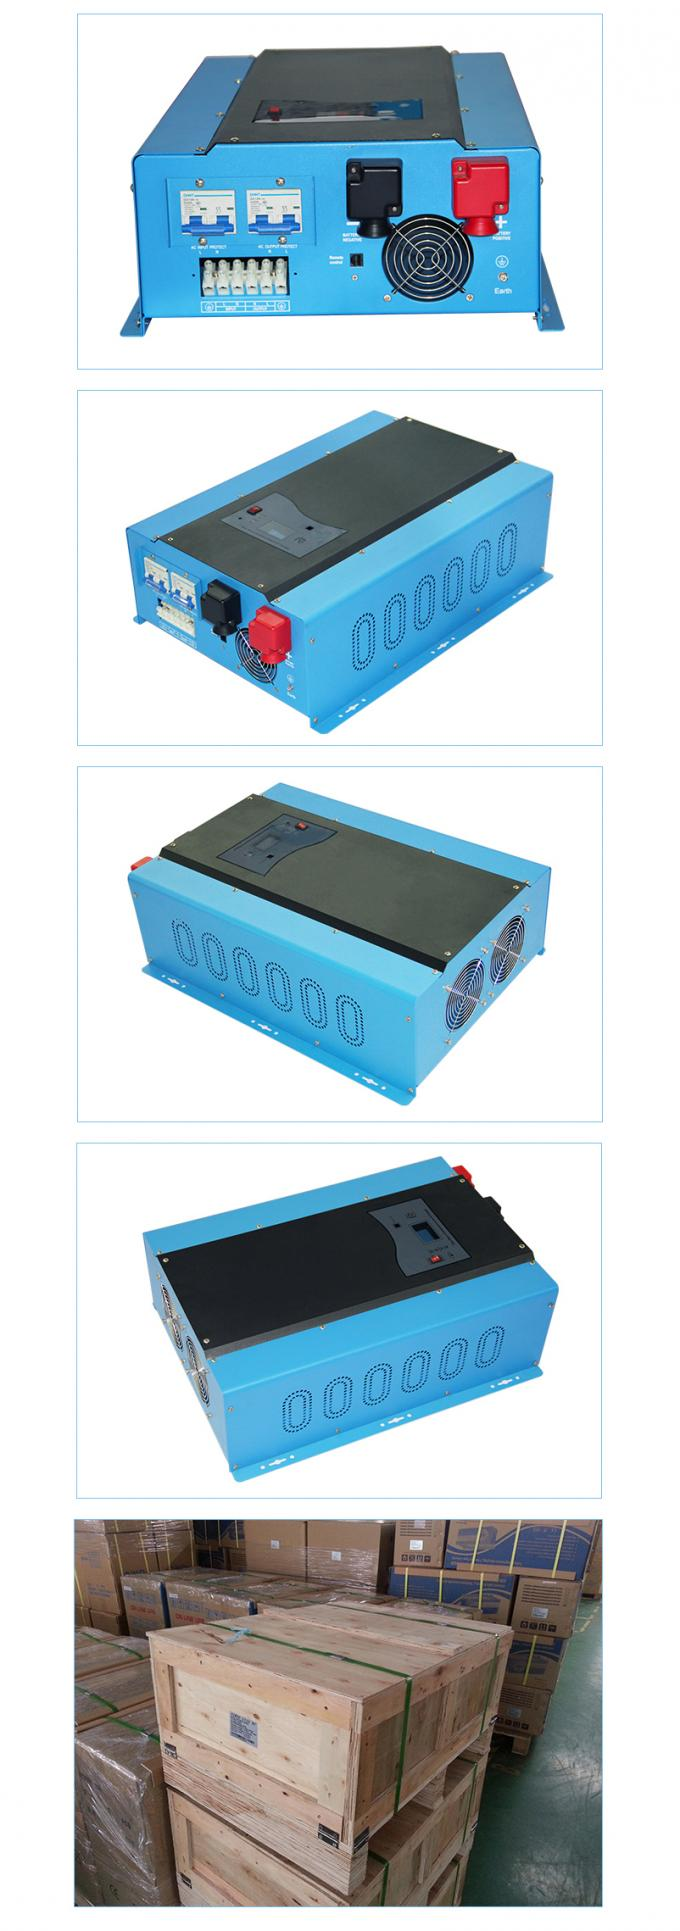 12000 watts 96Vdc pure sine wave power inverter with LCD display